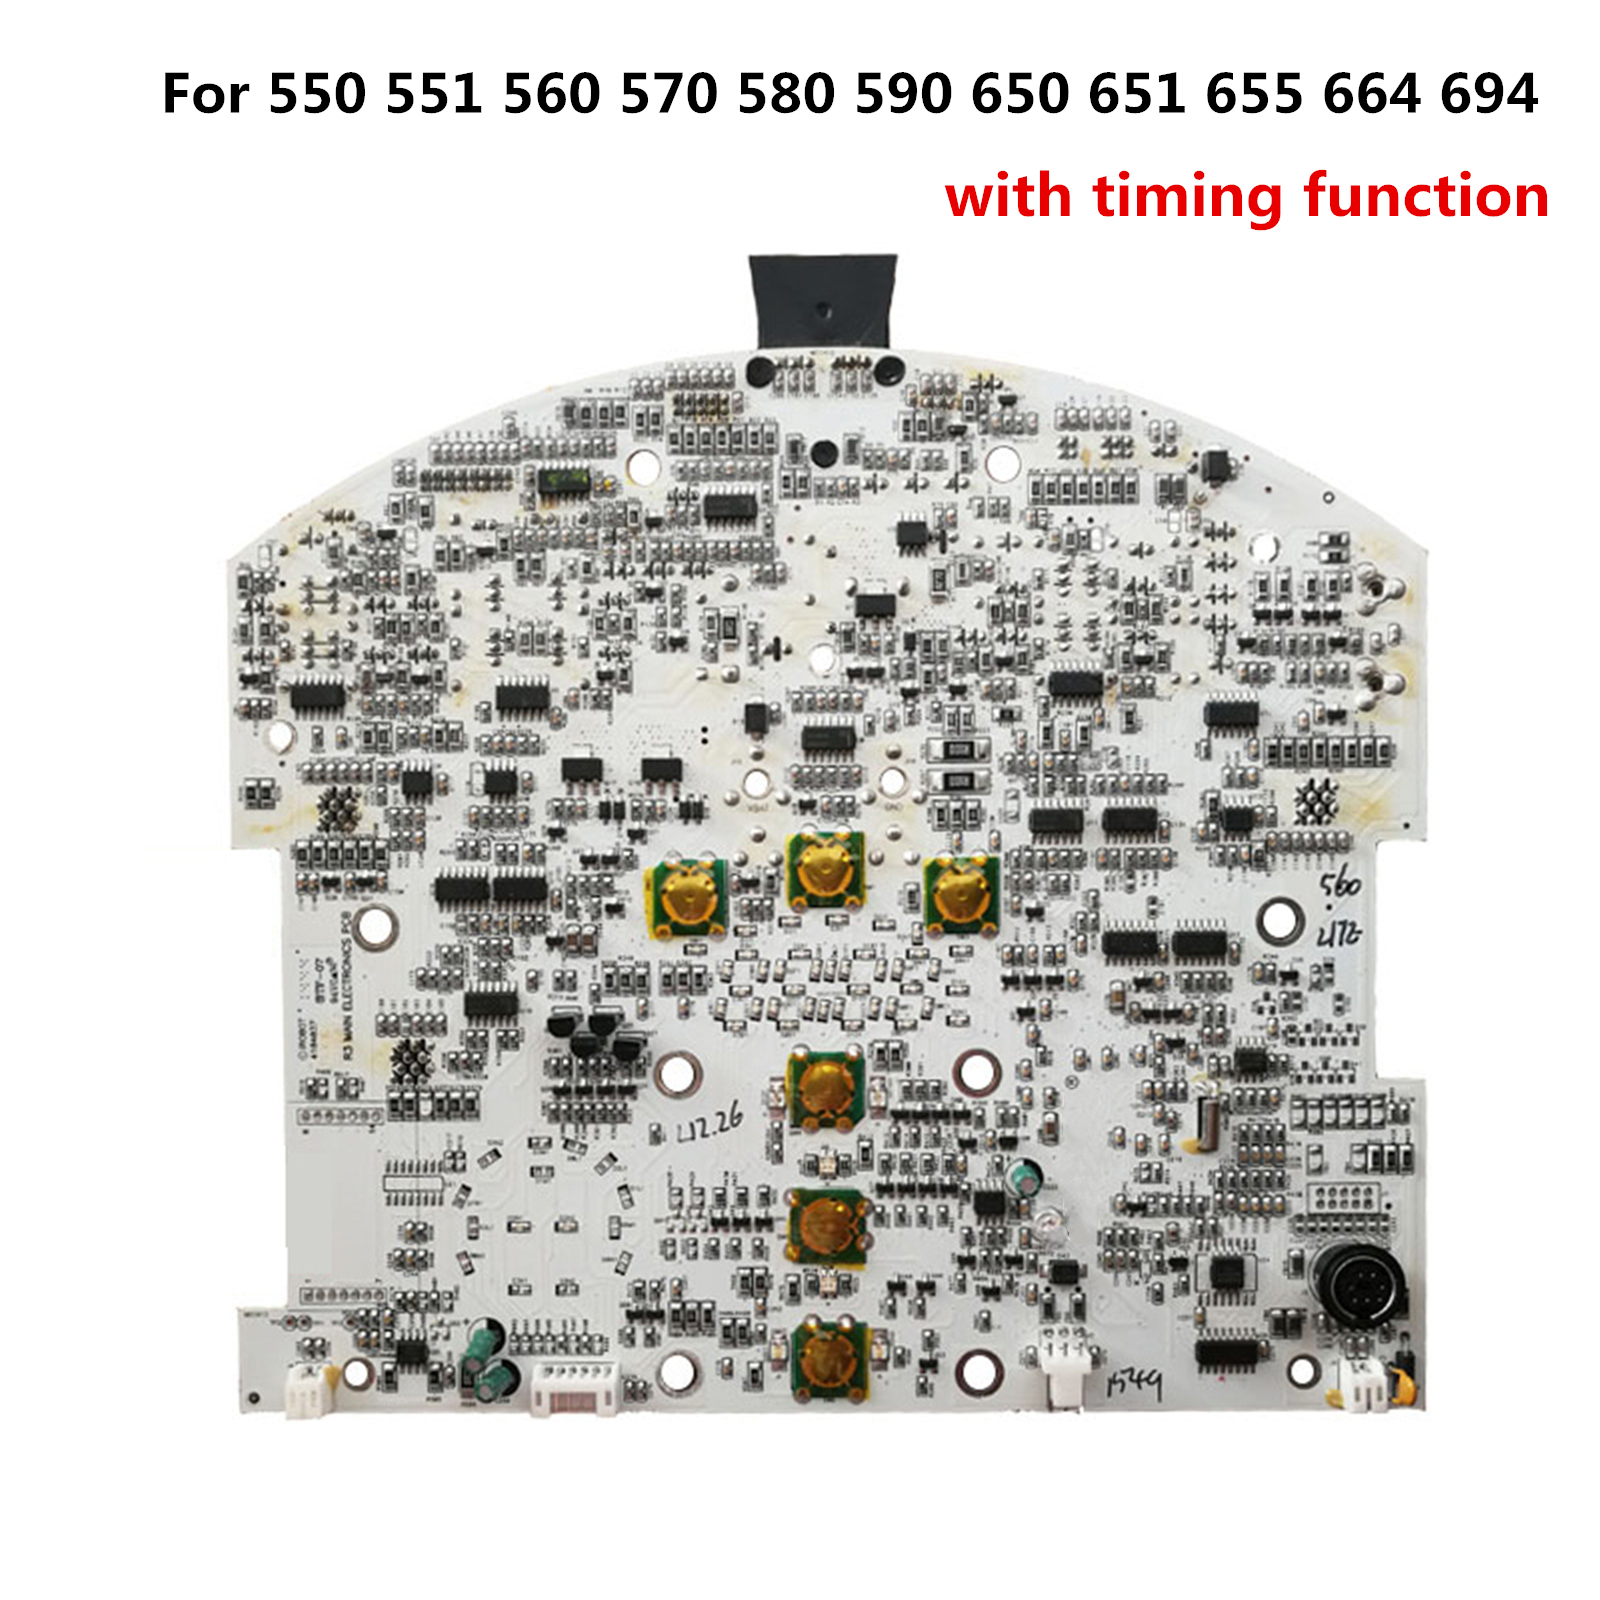 <font><b>PCB</b></font> Motherboard For iRobot Roomba Vacuum Cleaners 500 600 series with timing function Circuit Board Mainboard for 550 664 694 image